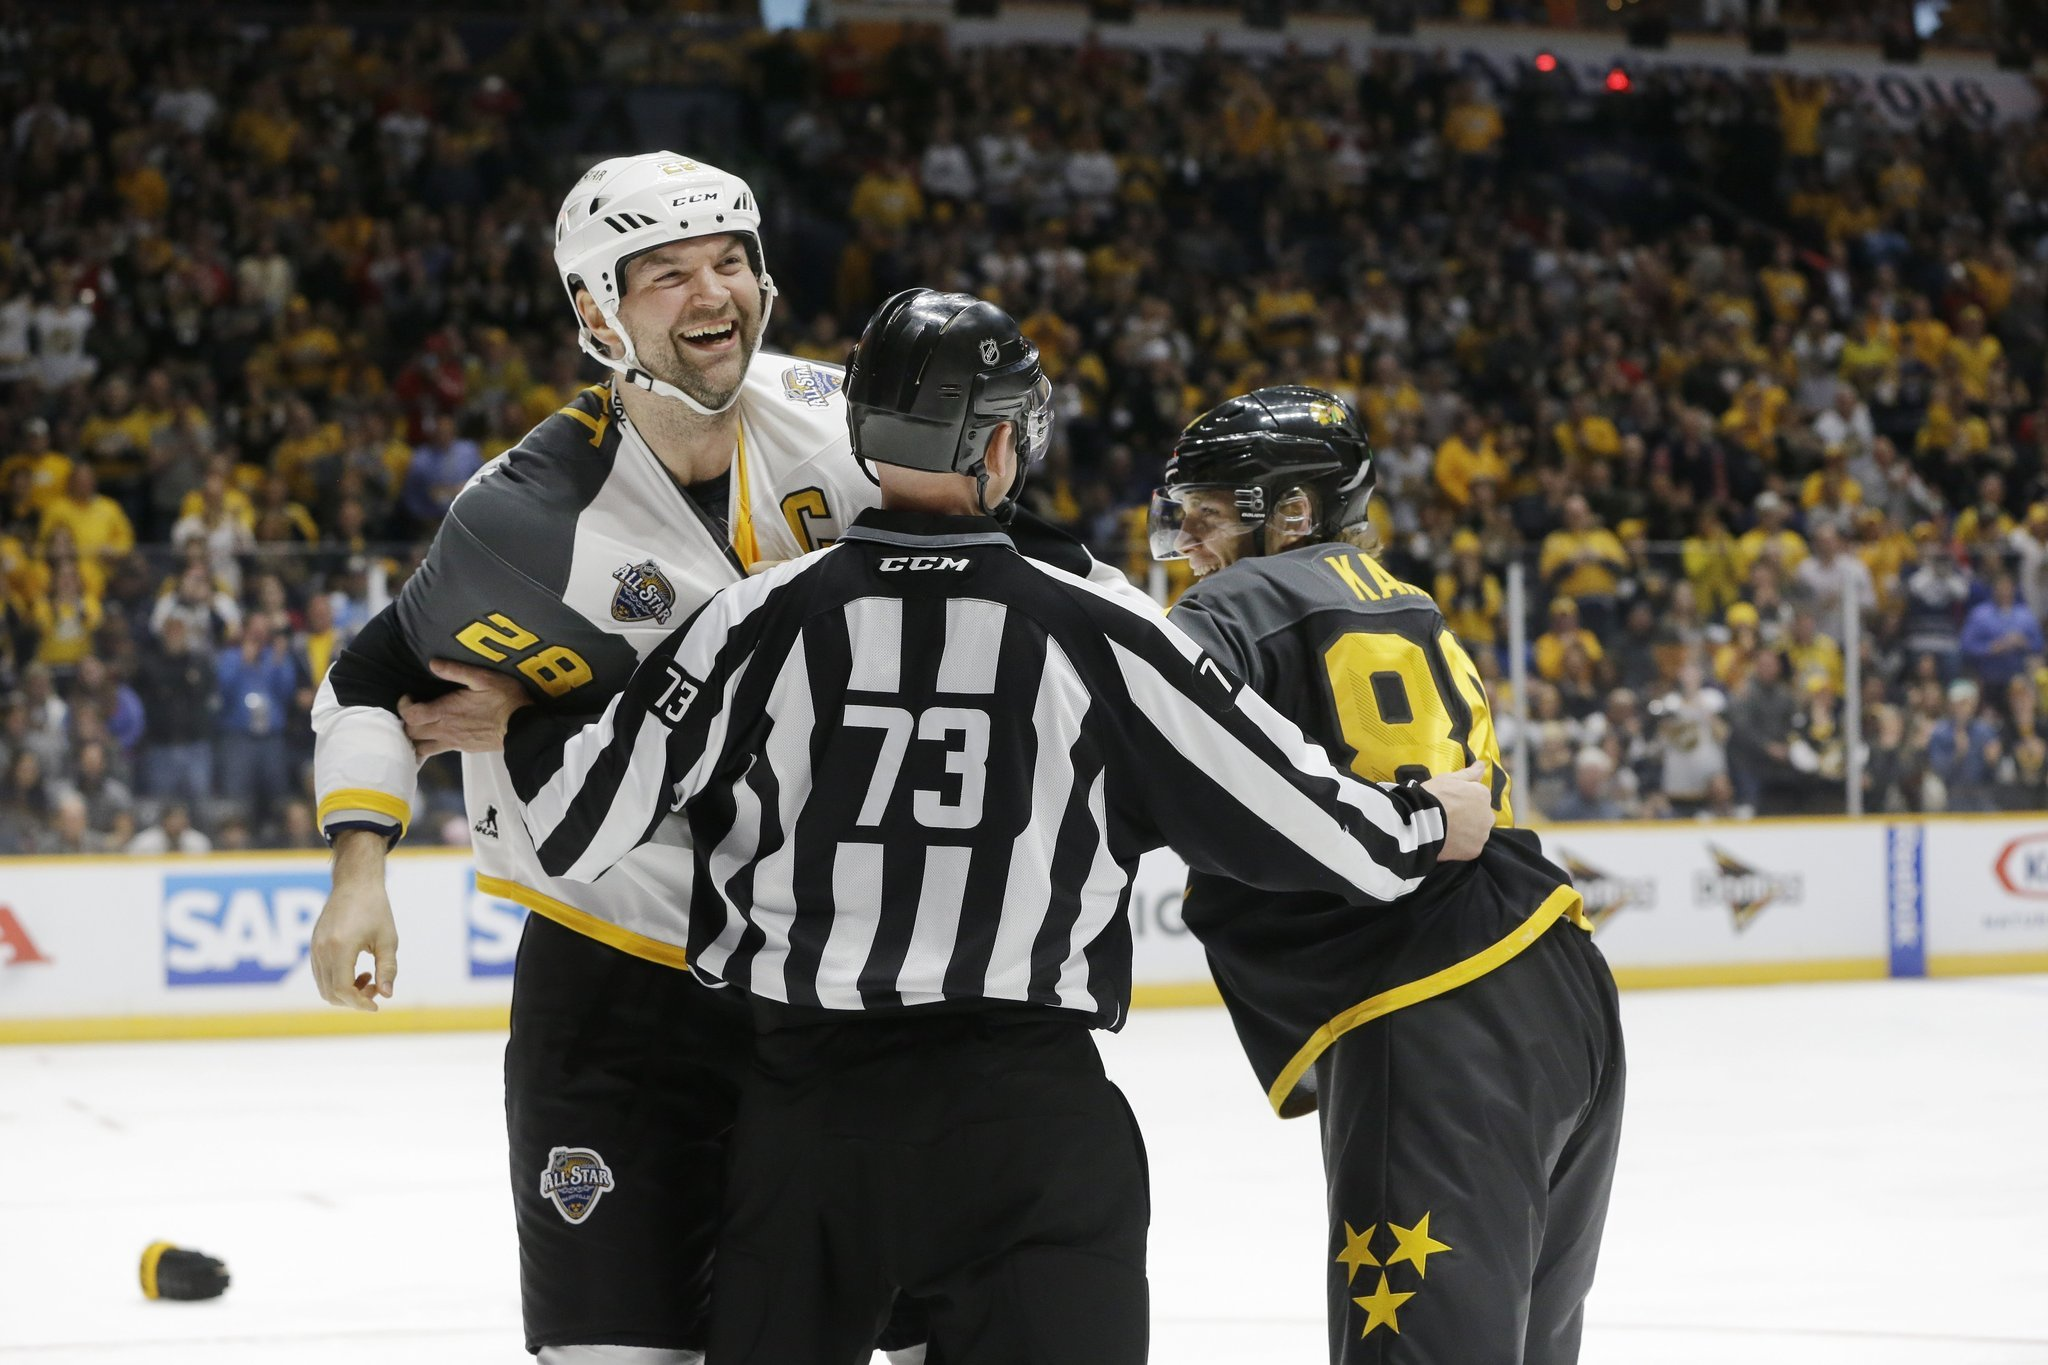 nhl fighting As the controversy of fighting in hockey grows, sportmedbc's safety coordinator seb hartell gives us his thoughts about on ice safety and how things can improve.